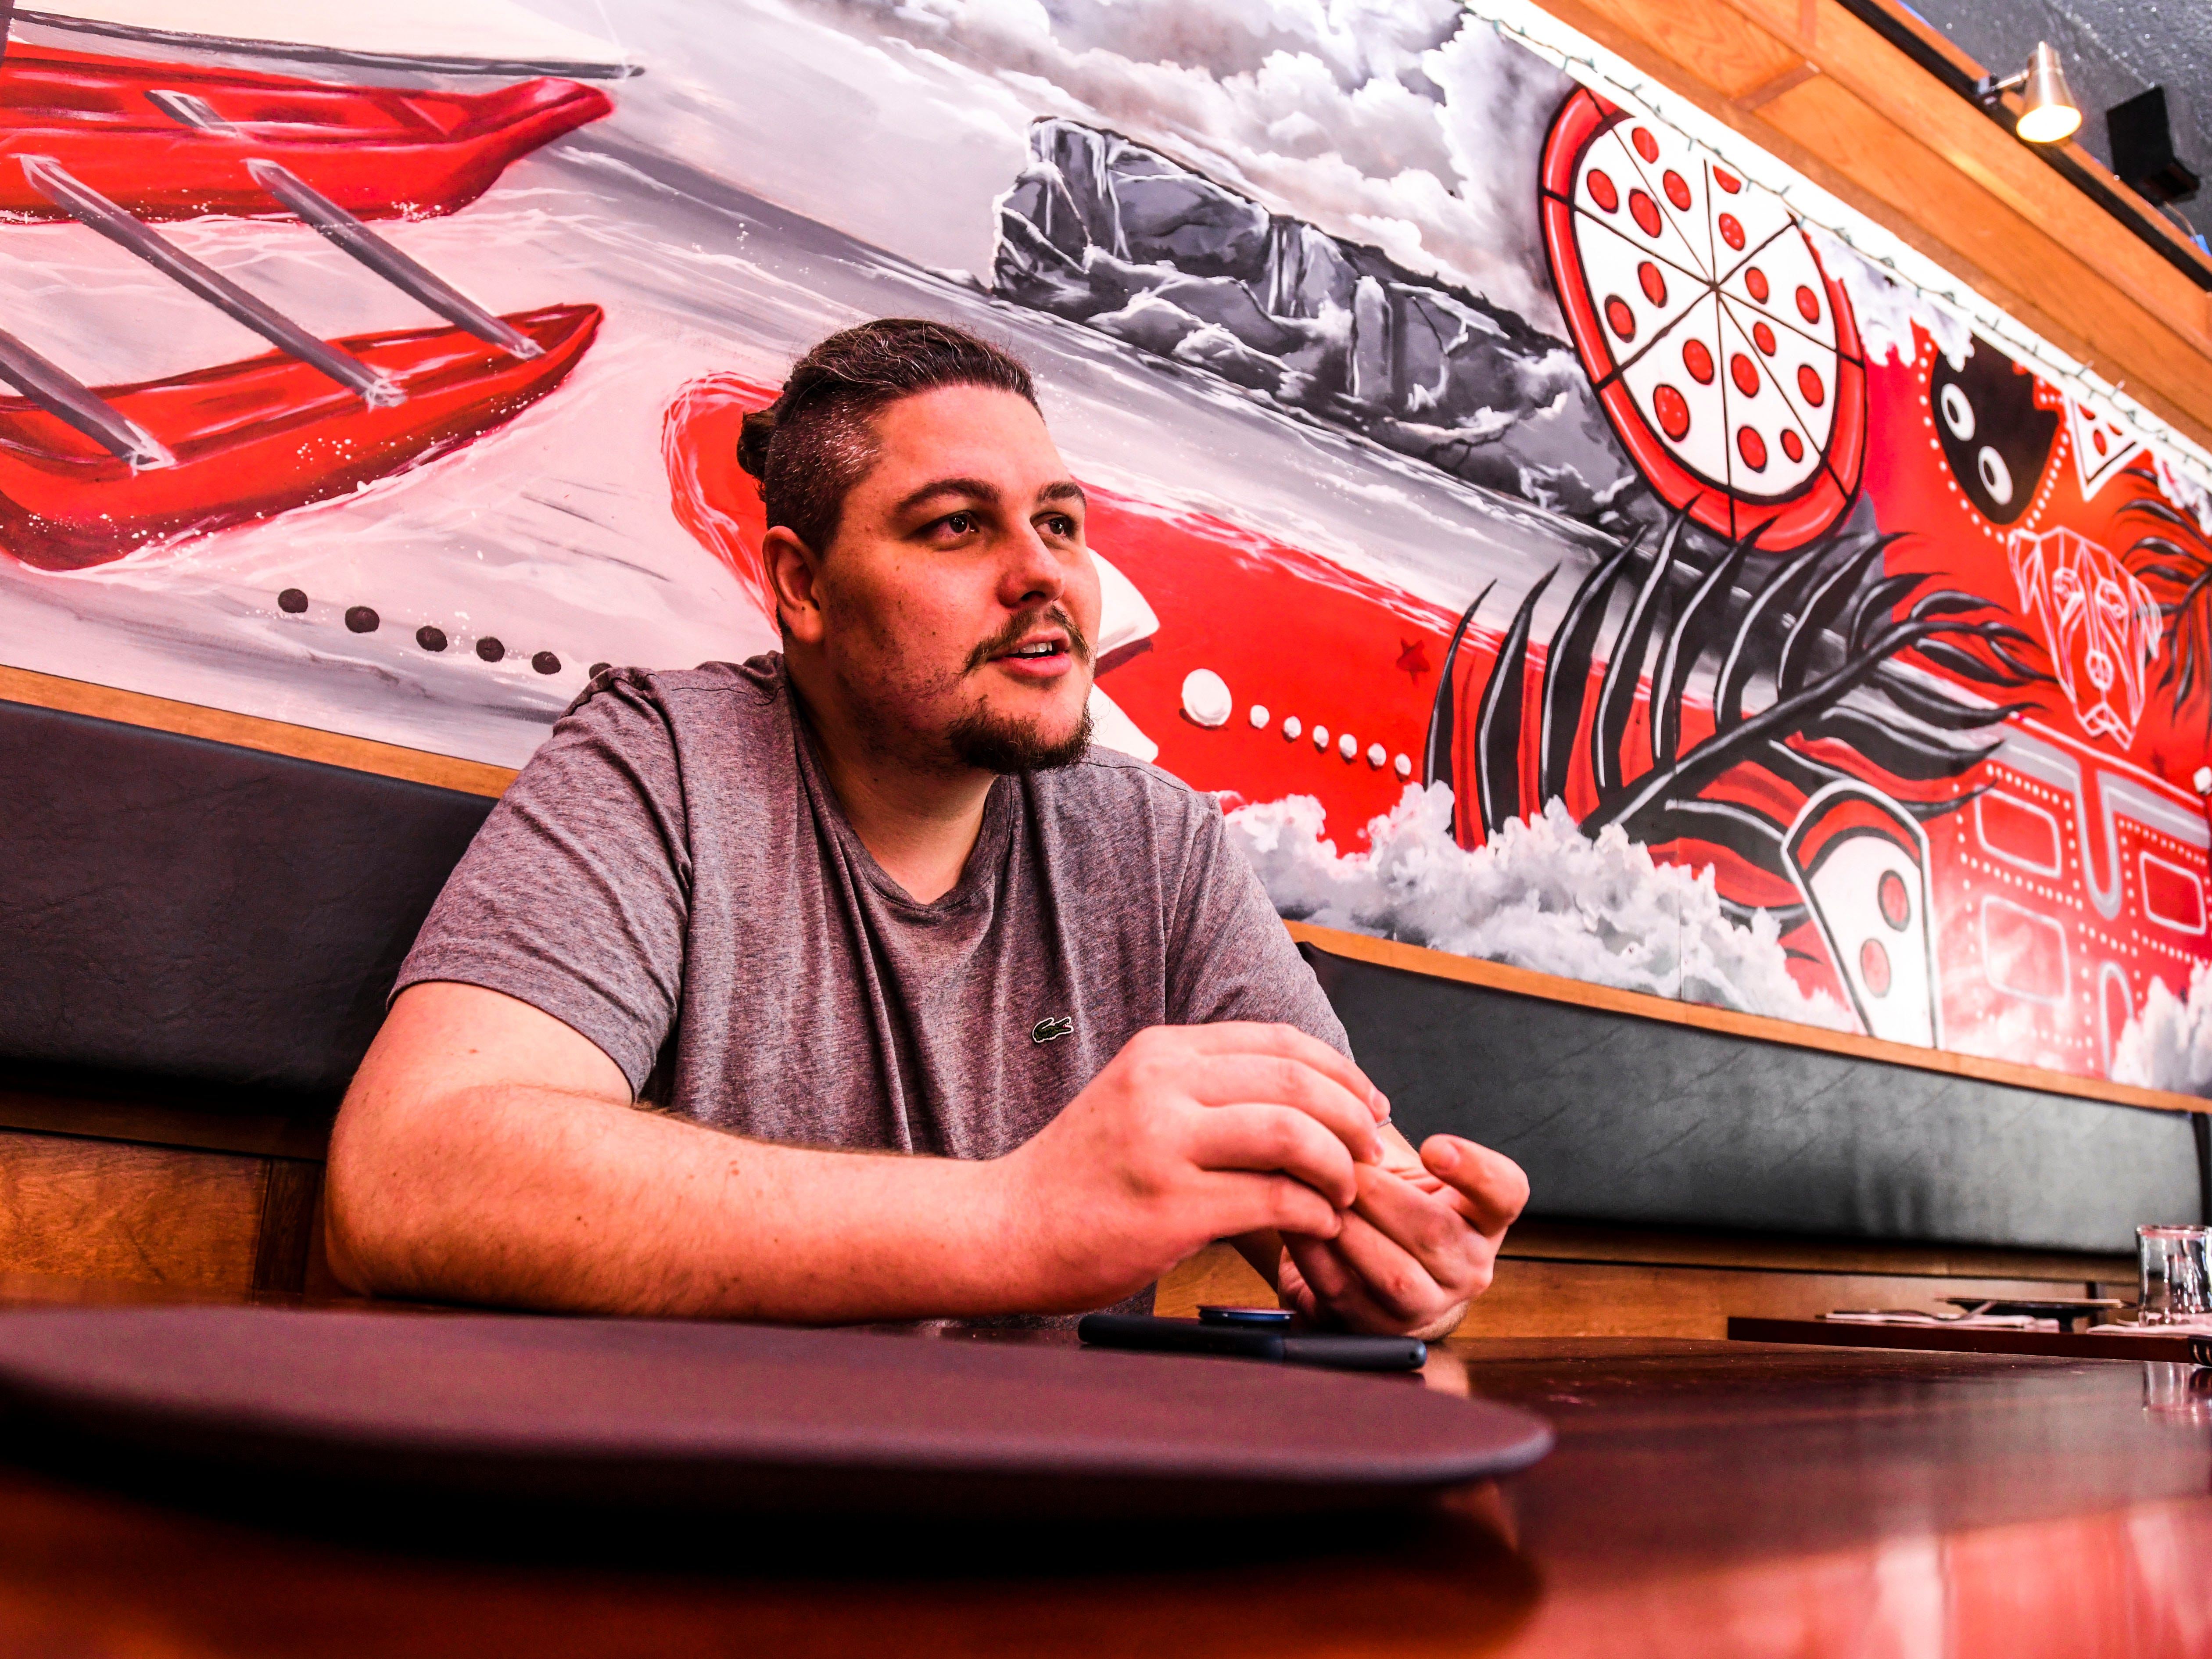 Dylan Saad, chef and owner of Primo Pizzakaya, talks about the talents possessed by the diverse group that makes up the staff at his pizzaria-type restaurant in Tumon, during an interview on Wednesday, Jan. 2, 2019.